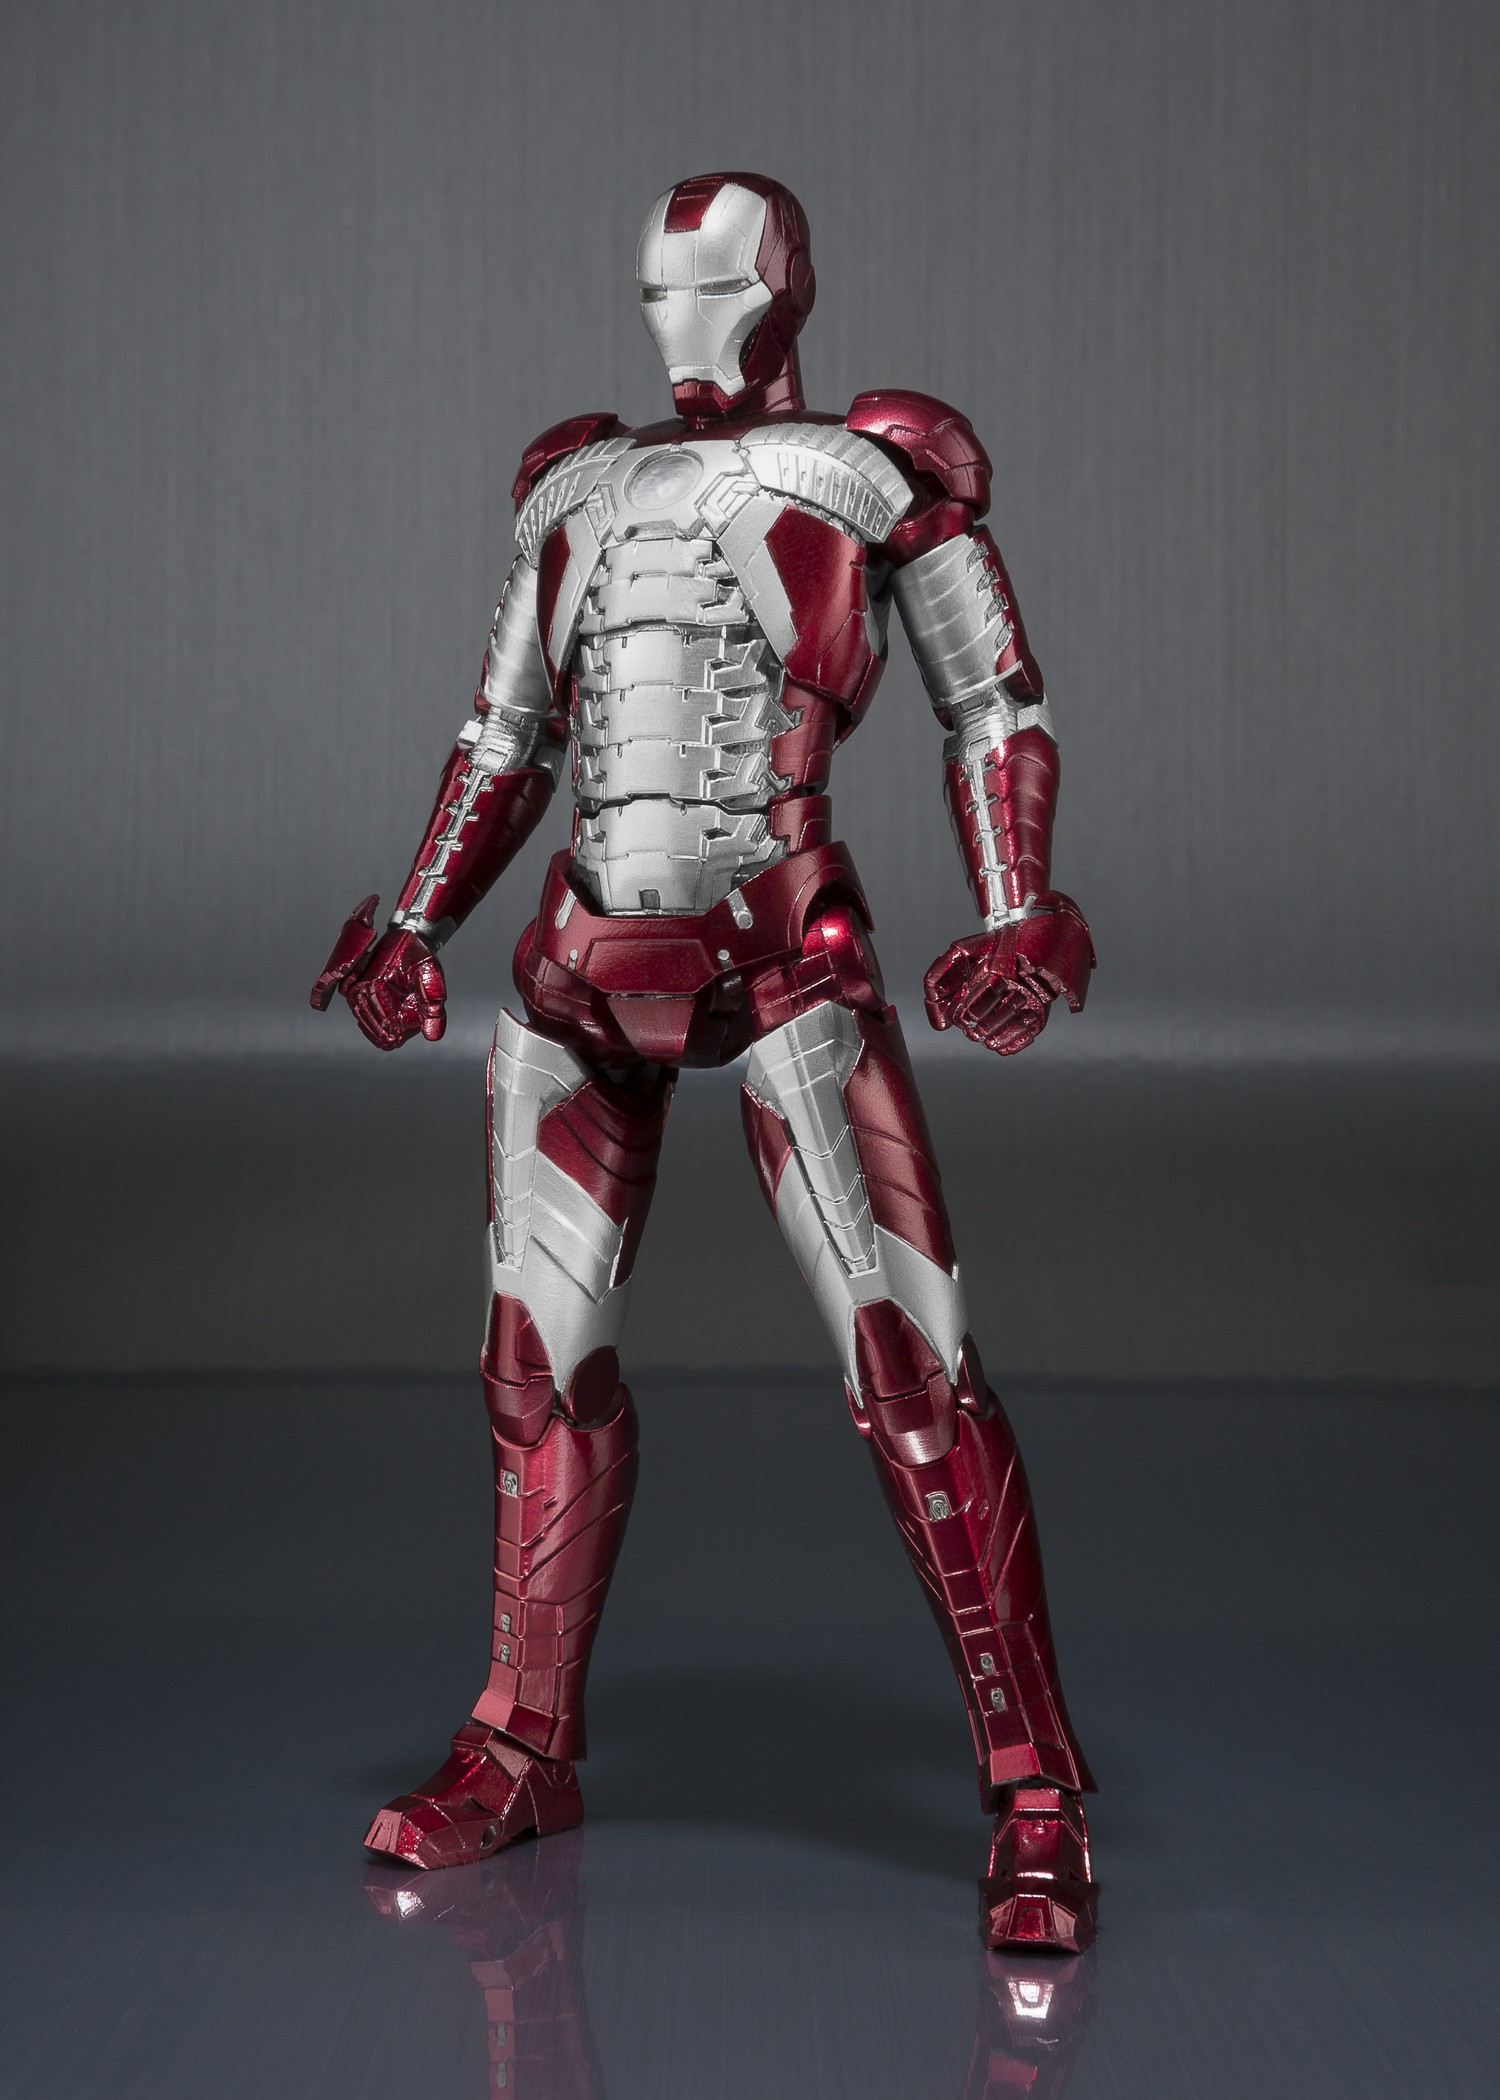 S H Figuarts Ironman Mk5 And Hall Of Armor